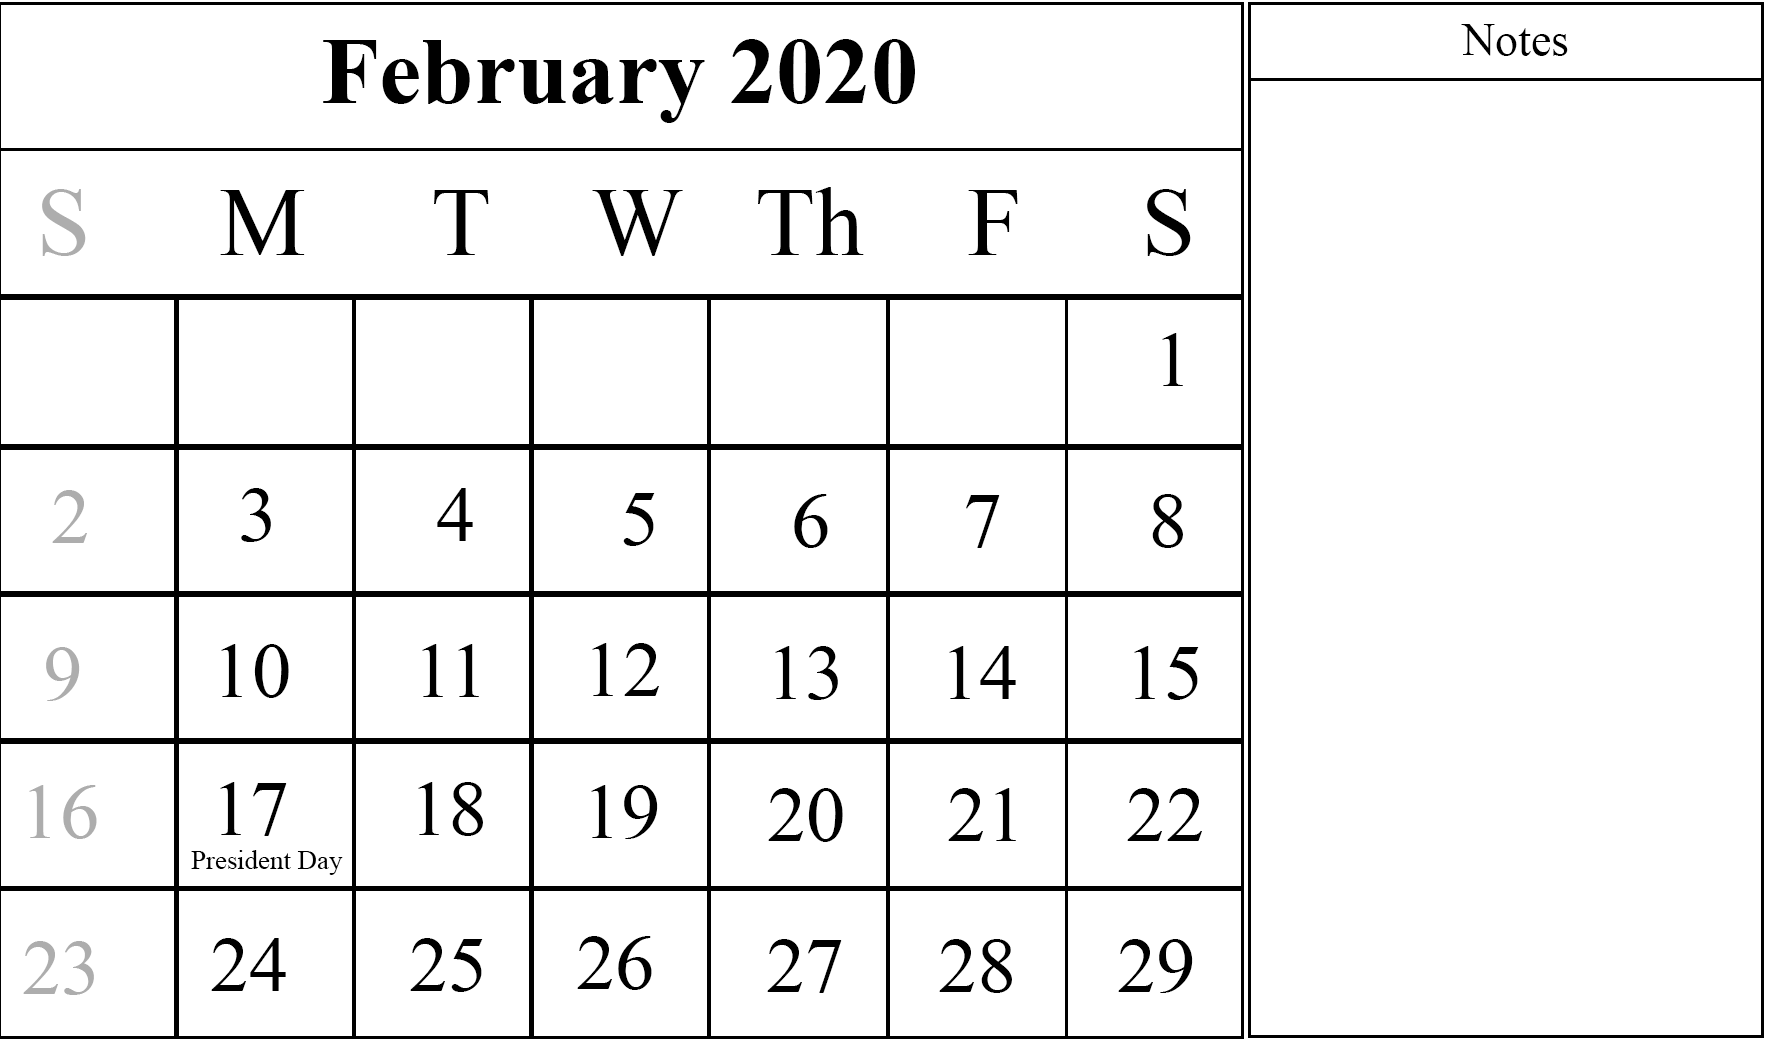 February 2020 Calendar with Notes